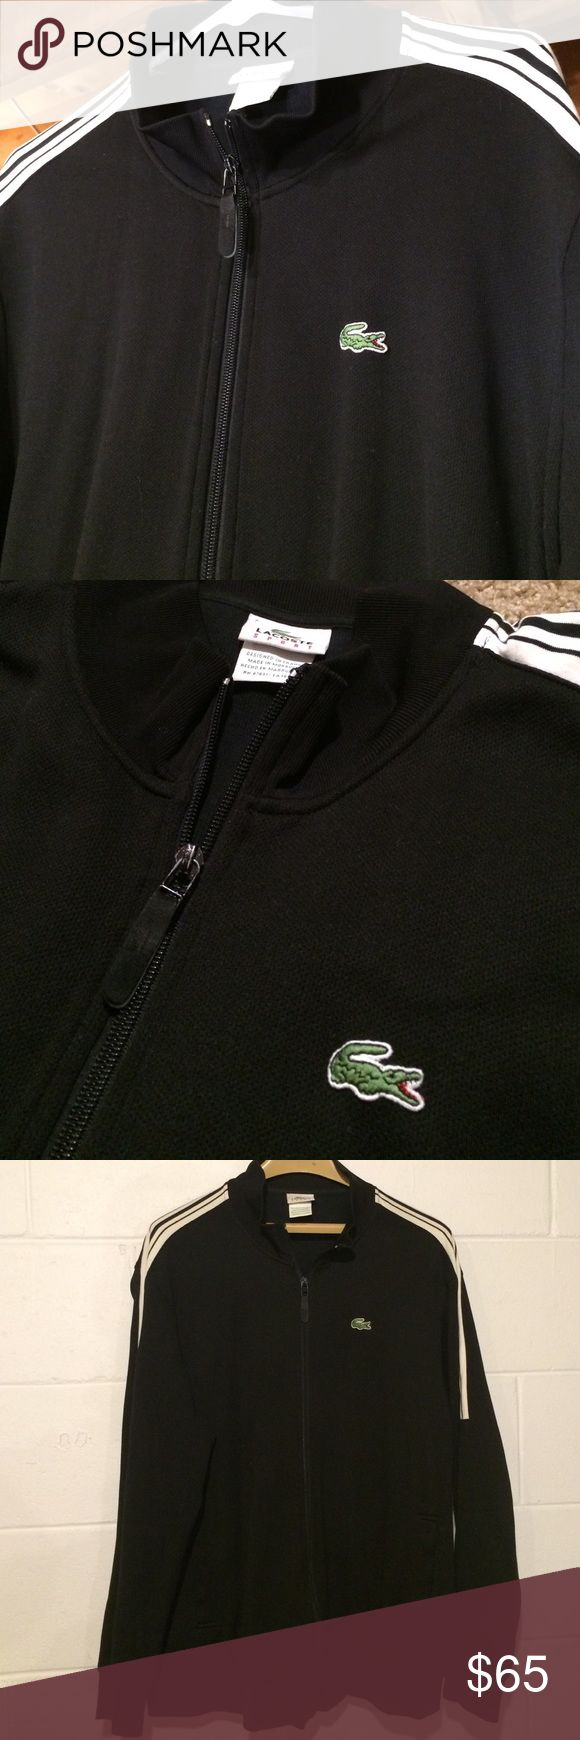 """Lacoste Sport Track Jacket! Very unique! In excellent, like new condition. This is a rare Lacoste jacket! Designed in France with 58% cotton, 42% polyester. This jacket goes great with anything! Beautiful black color with traditional green Lacoste logo stitched on chest. Tag says """"7"""" for size. The jacket fits like a Men's Large. Lacoste Jackets & Coats"""